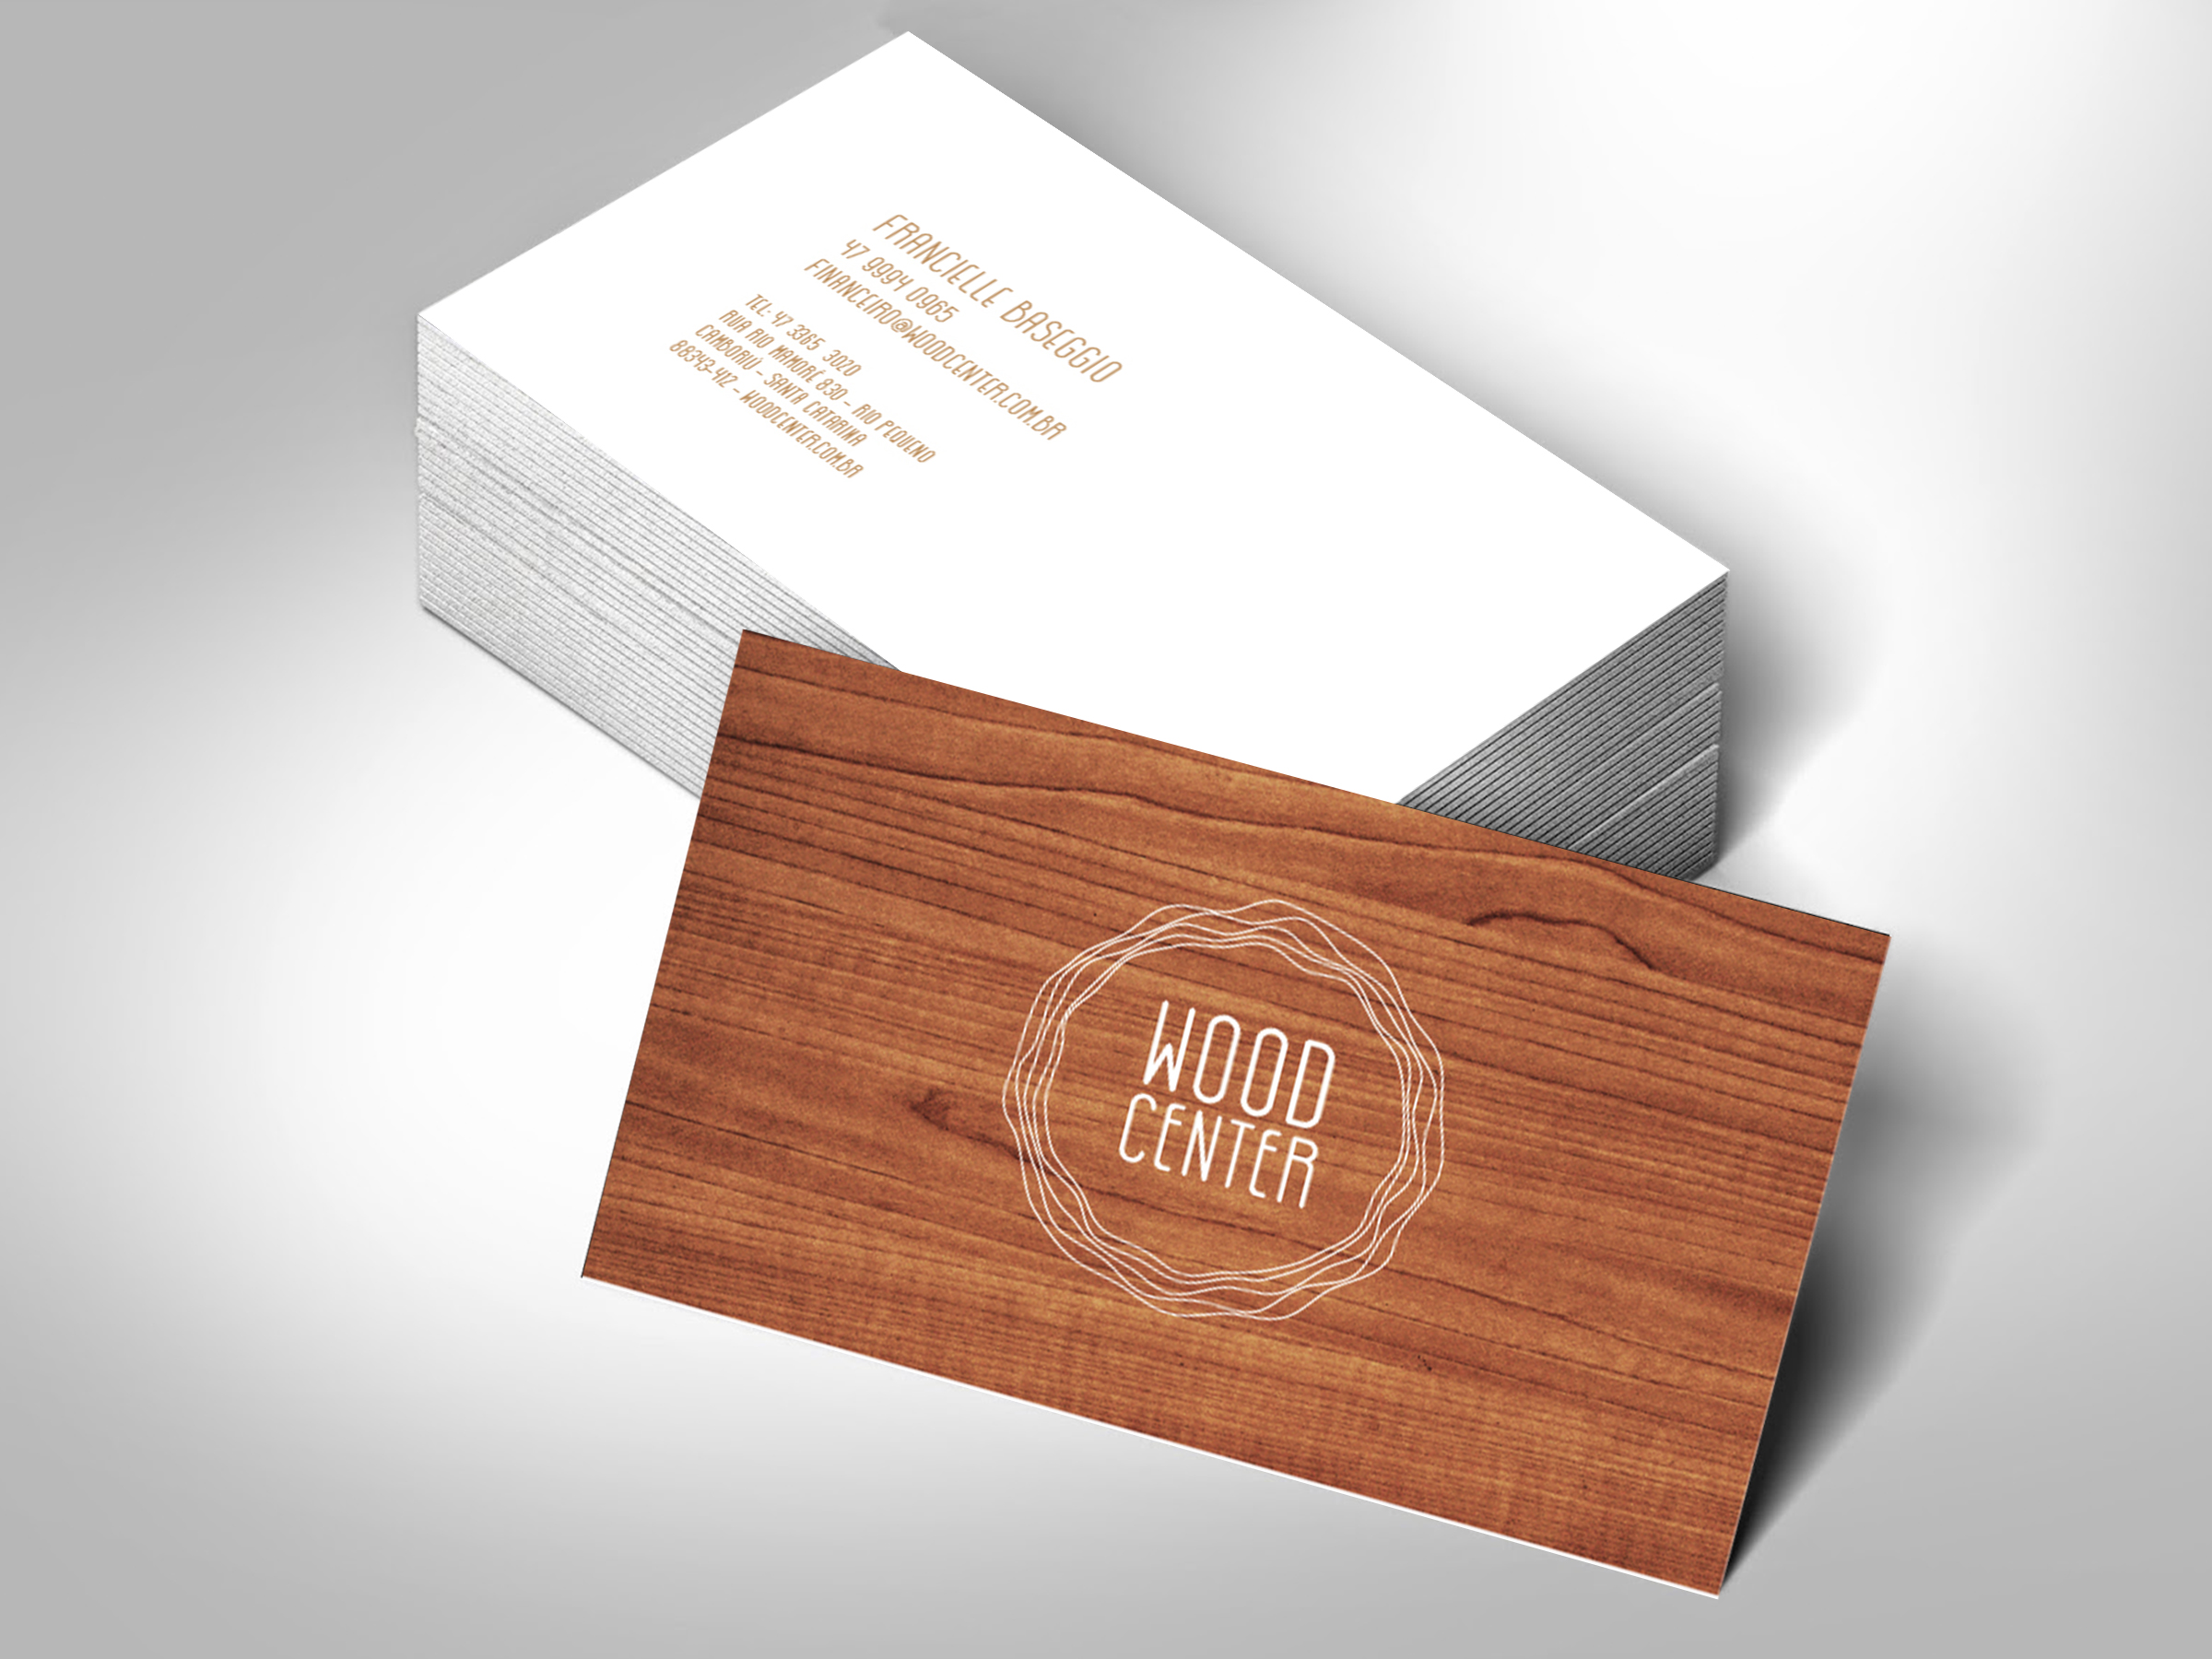 Inteligencia Marketing - WOOD CENTER – NOVA IDENTIDADE - Cartao-de-visitas1